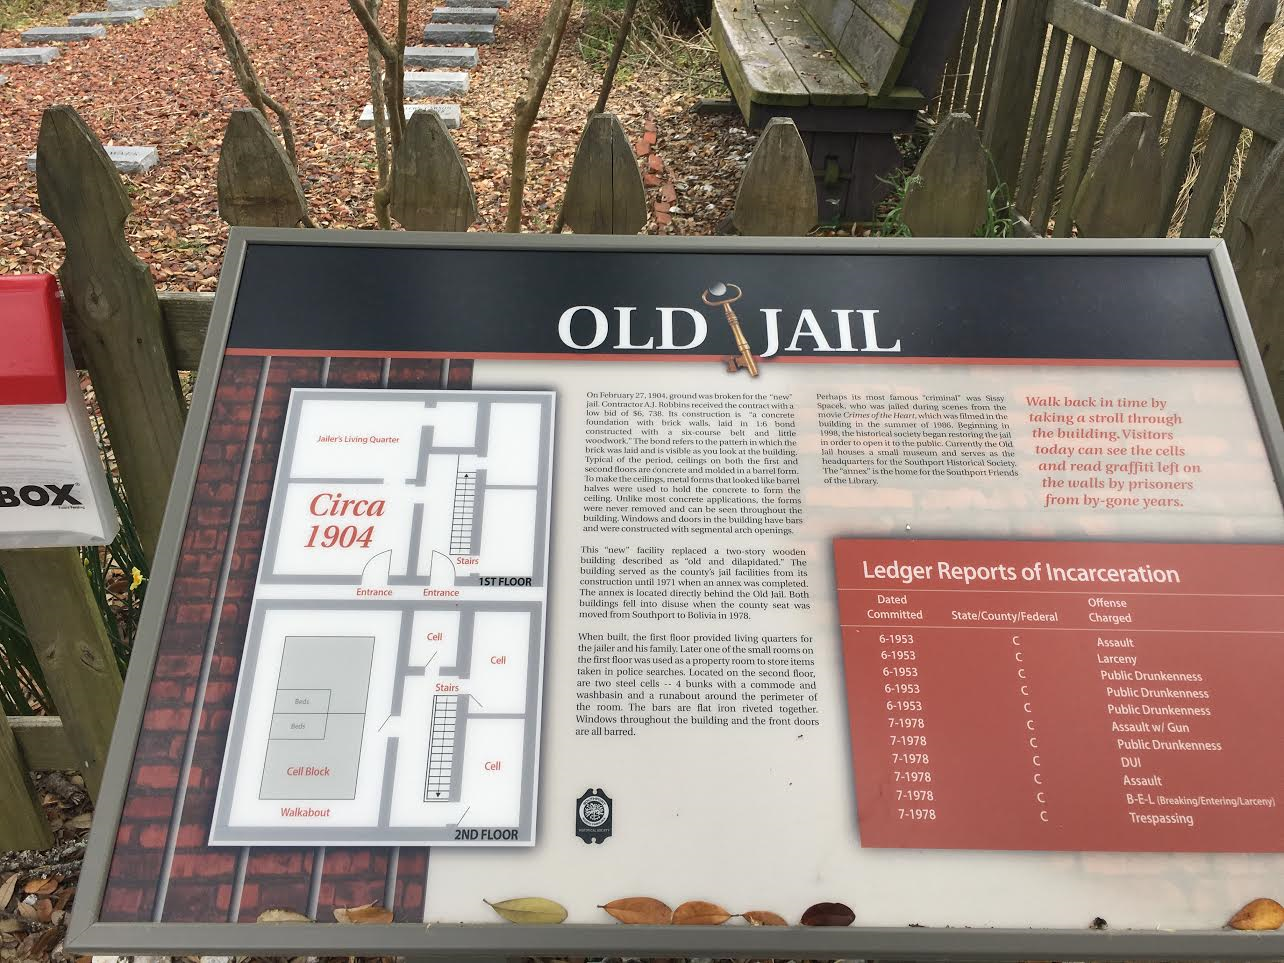 Information placard at the jail